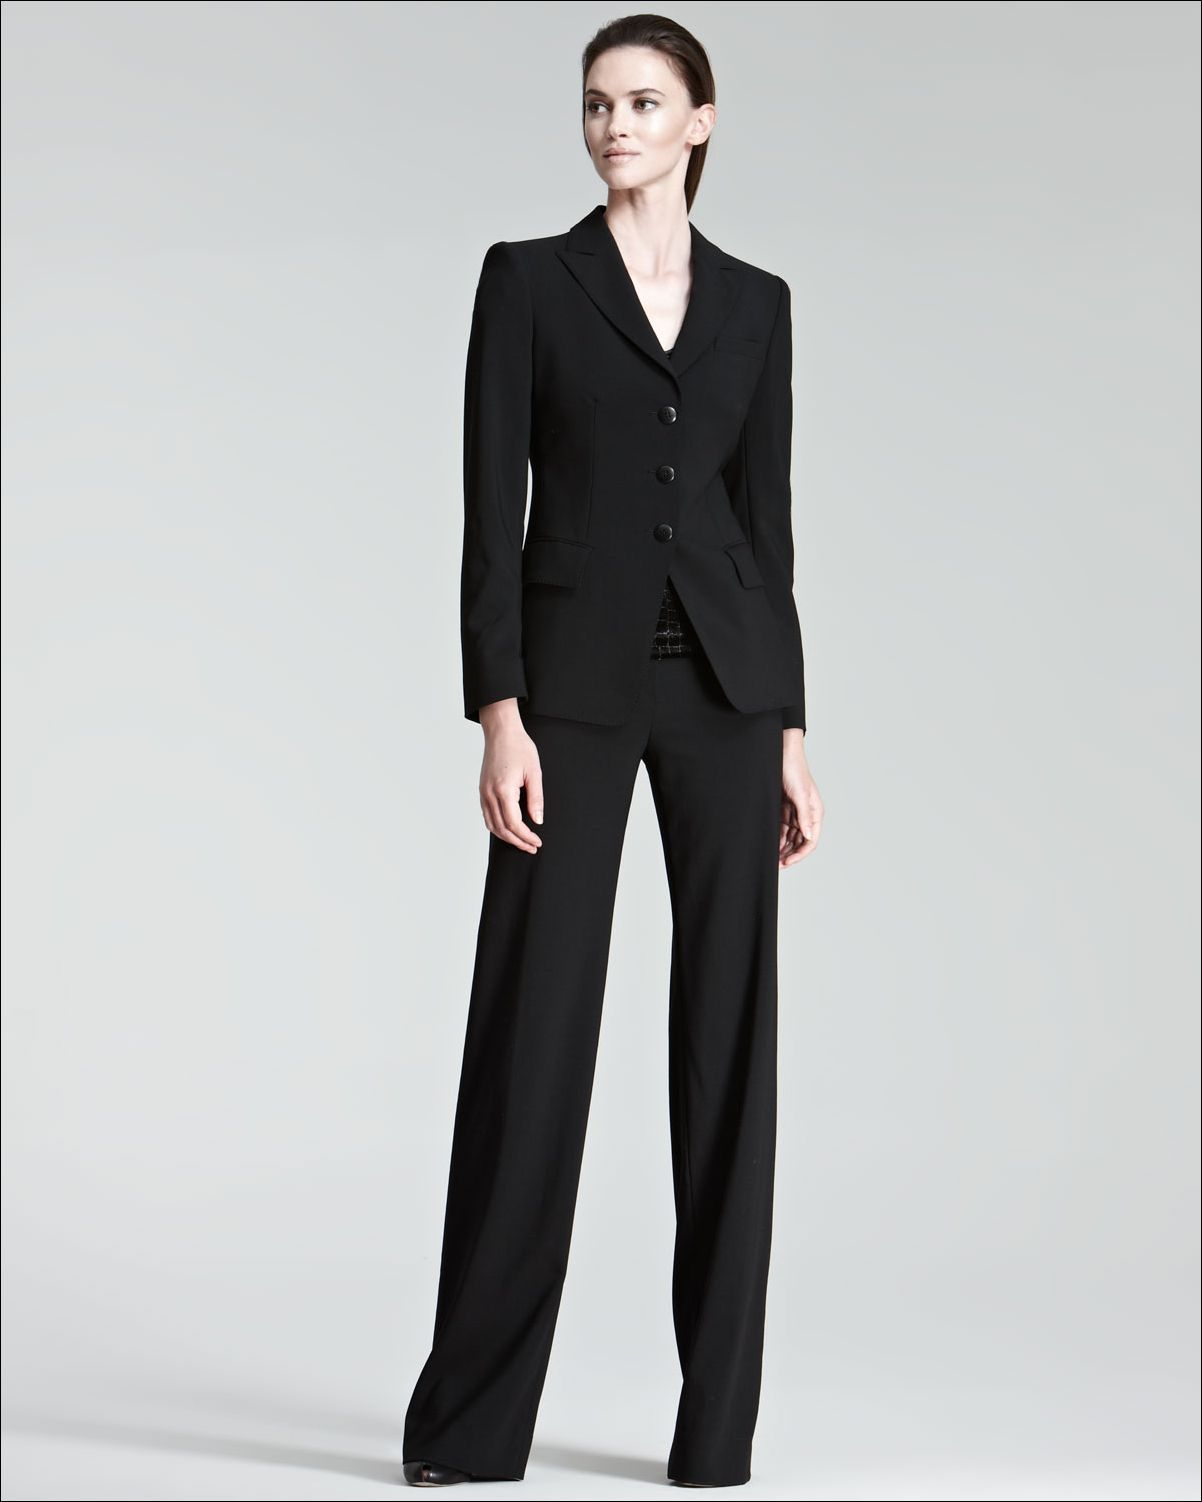 Armani Suits For Women Trendy | Style | Armani suits ...